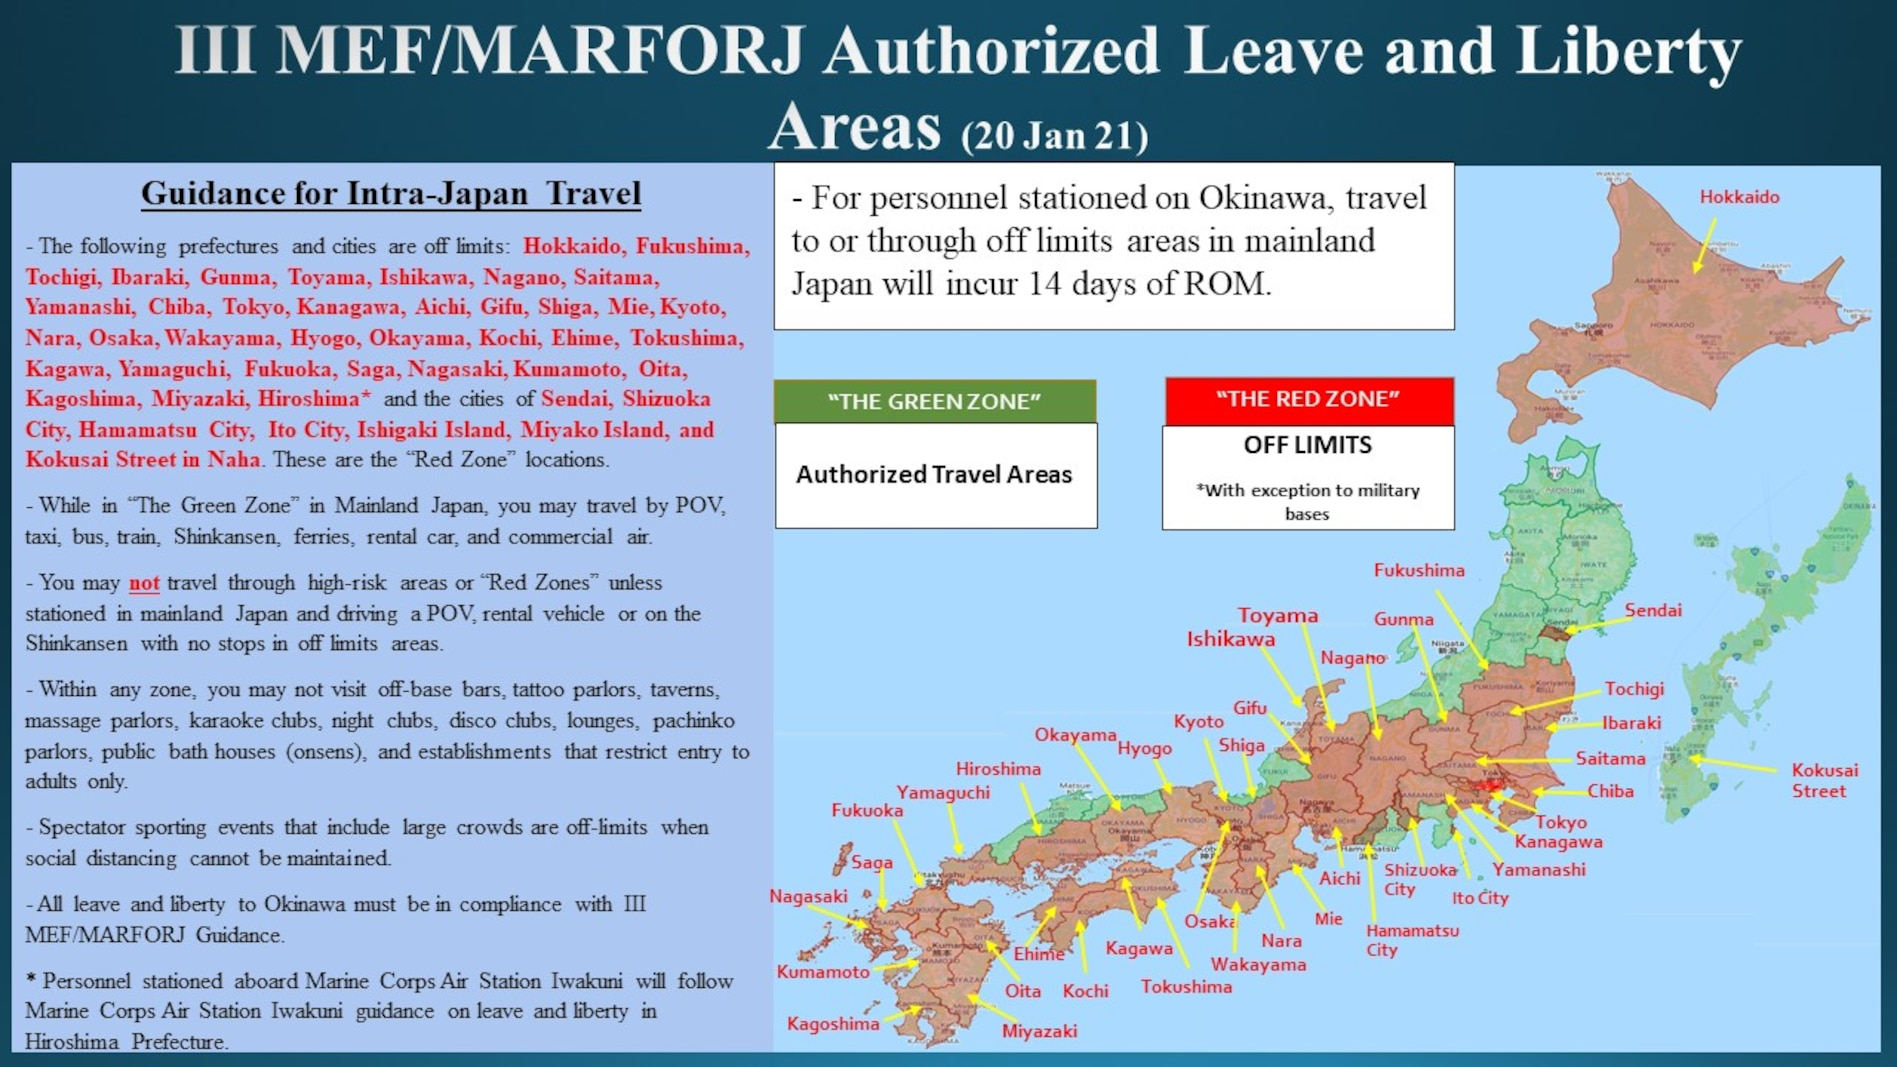 III MEF/MARFORJ Authorized Leave and Liberty Areas (20 Jan 21)